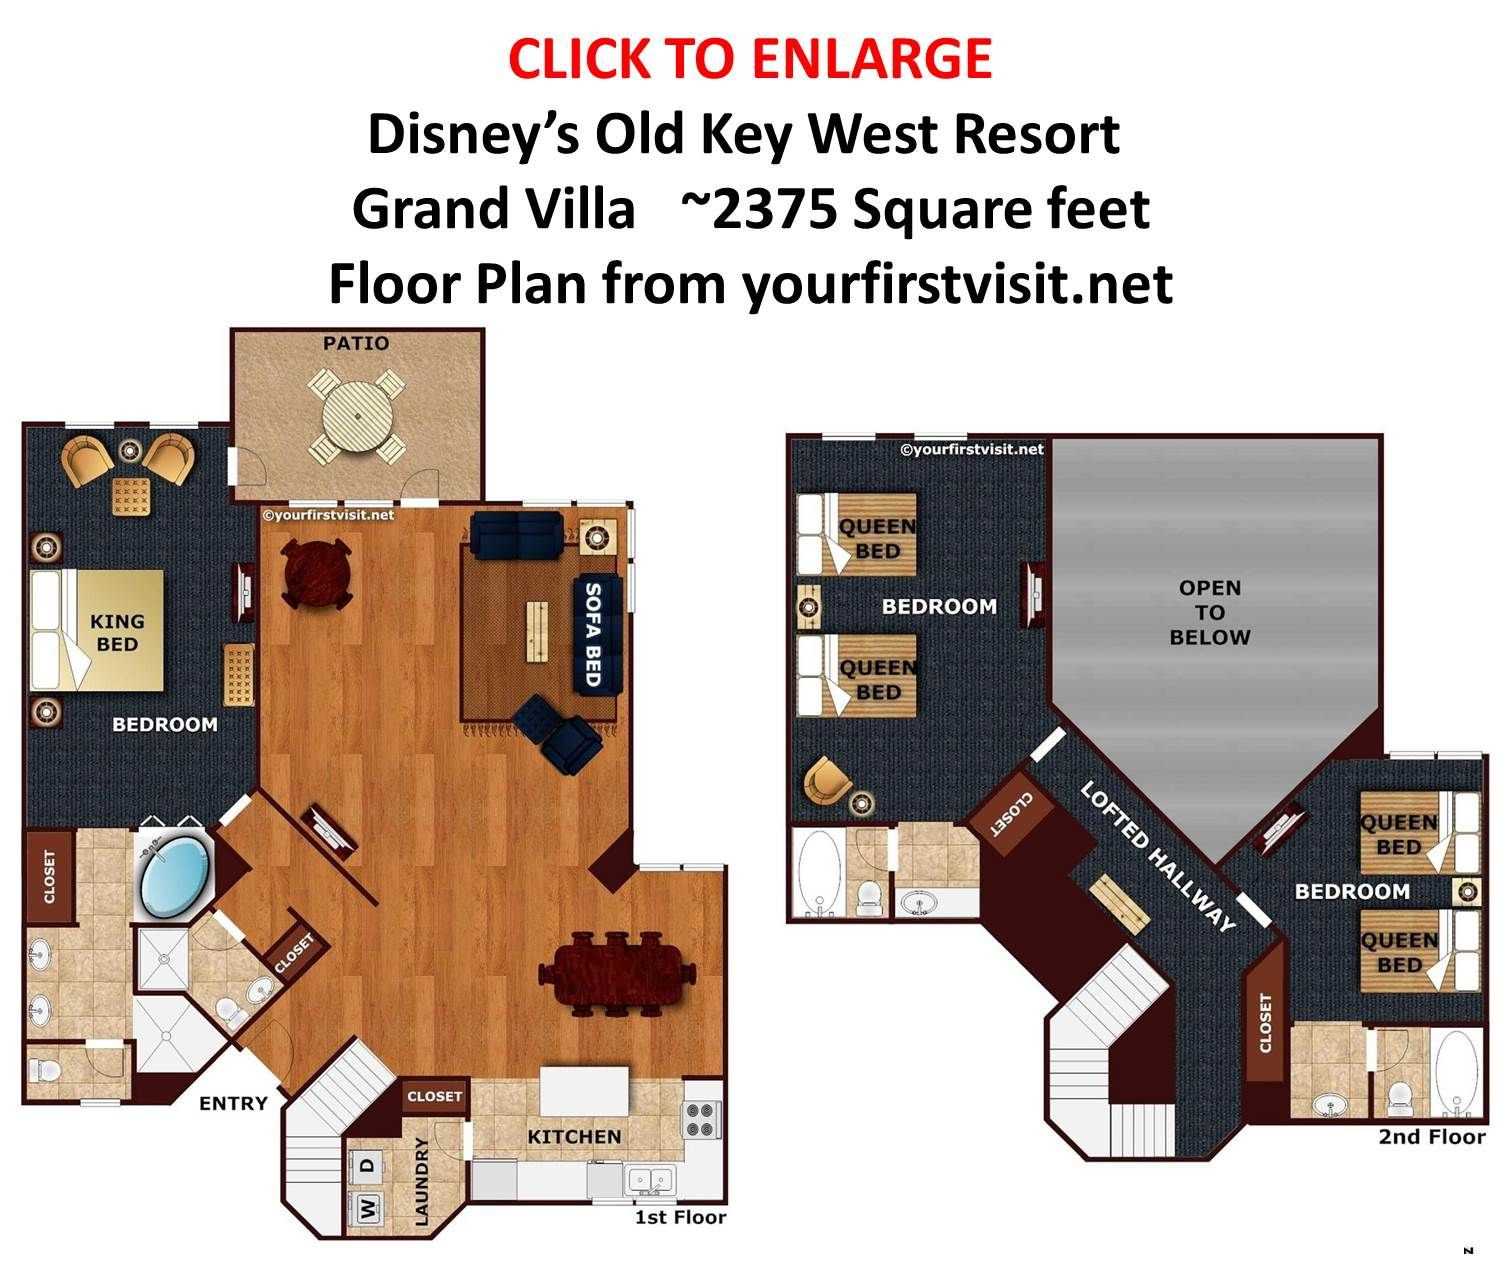 Overview Of Accommodations At Disney S Old Key West Resort Yourfirstvisit Net Disney Key West Resort Key West Resorts Old Key